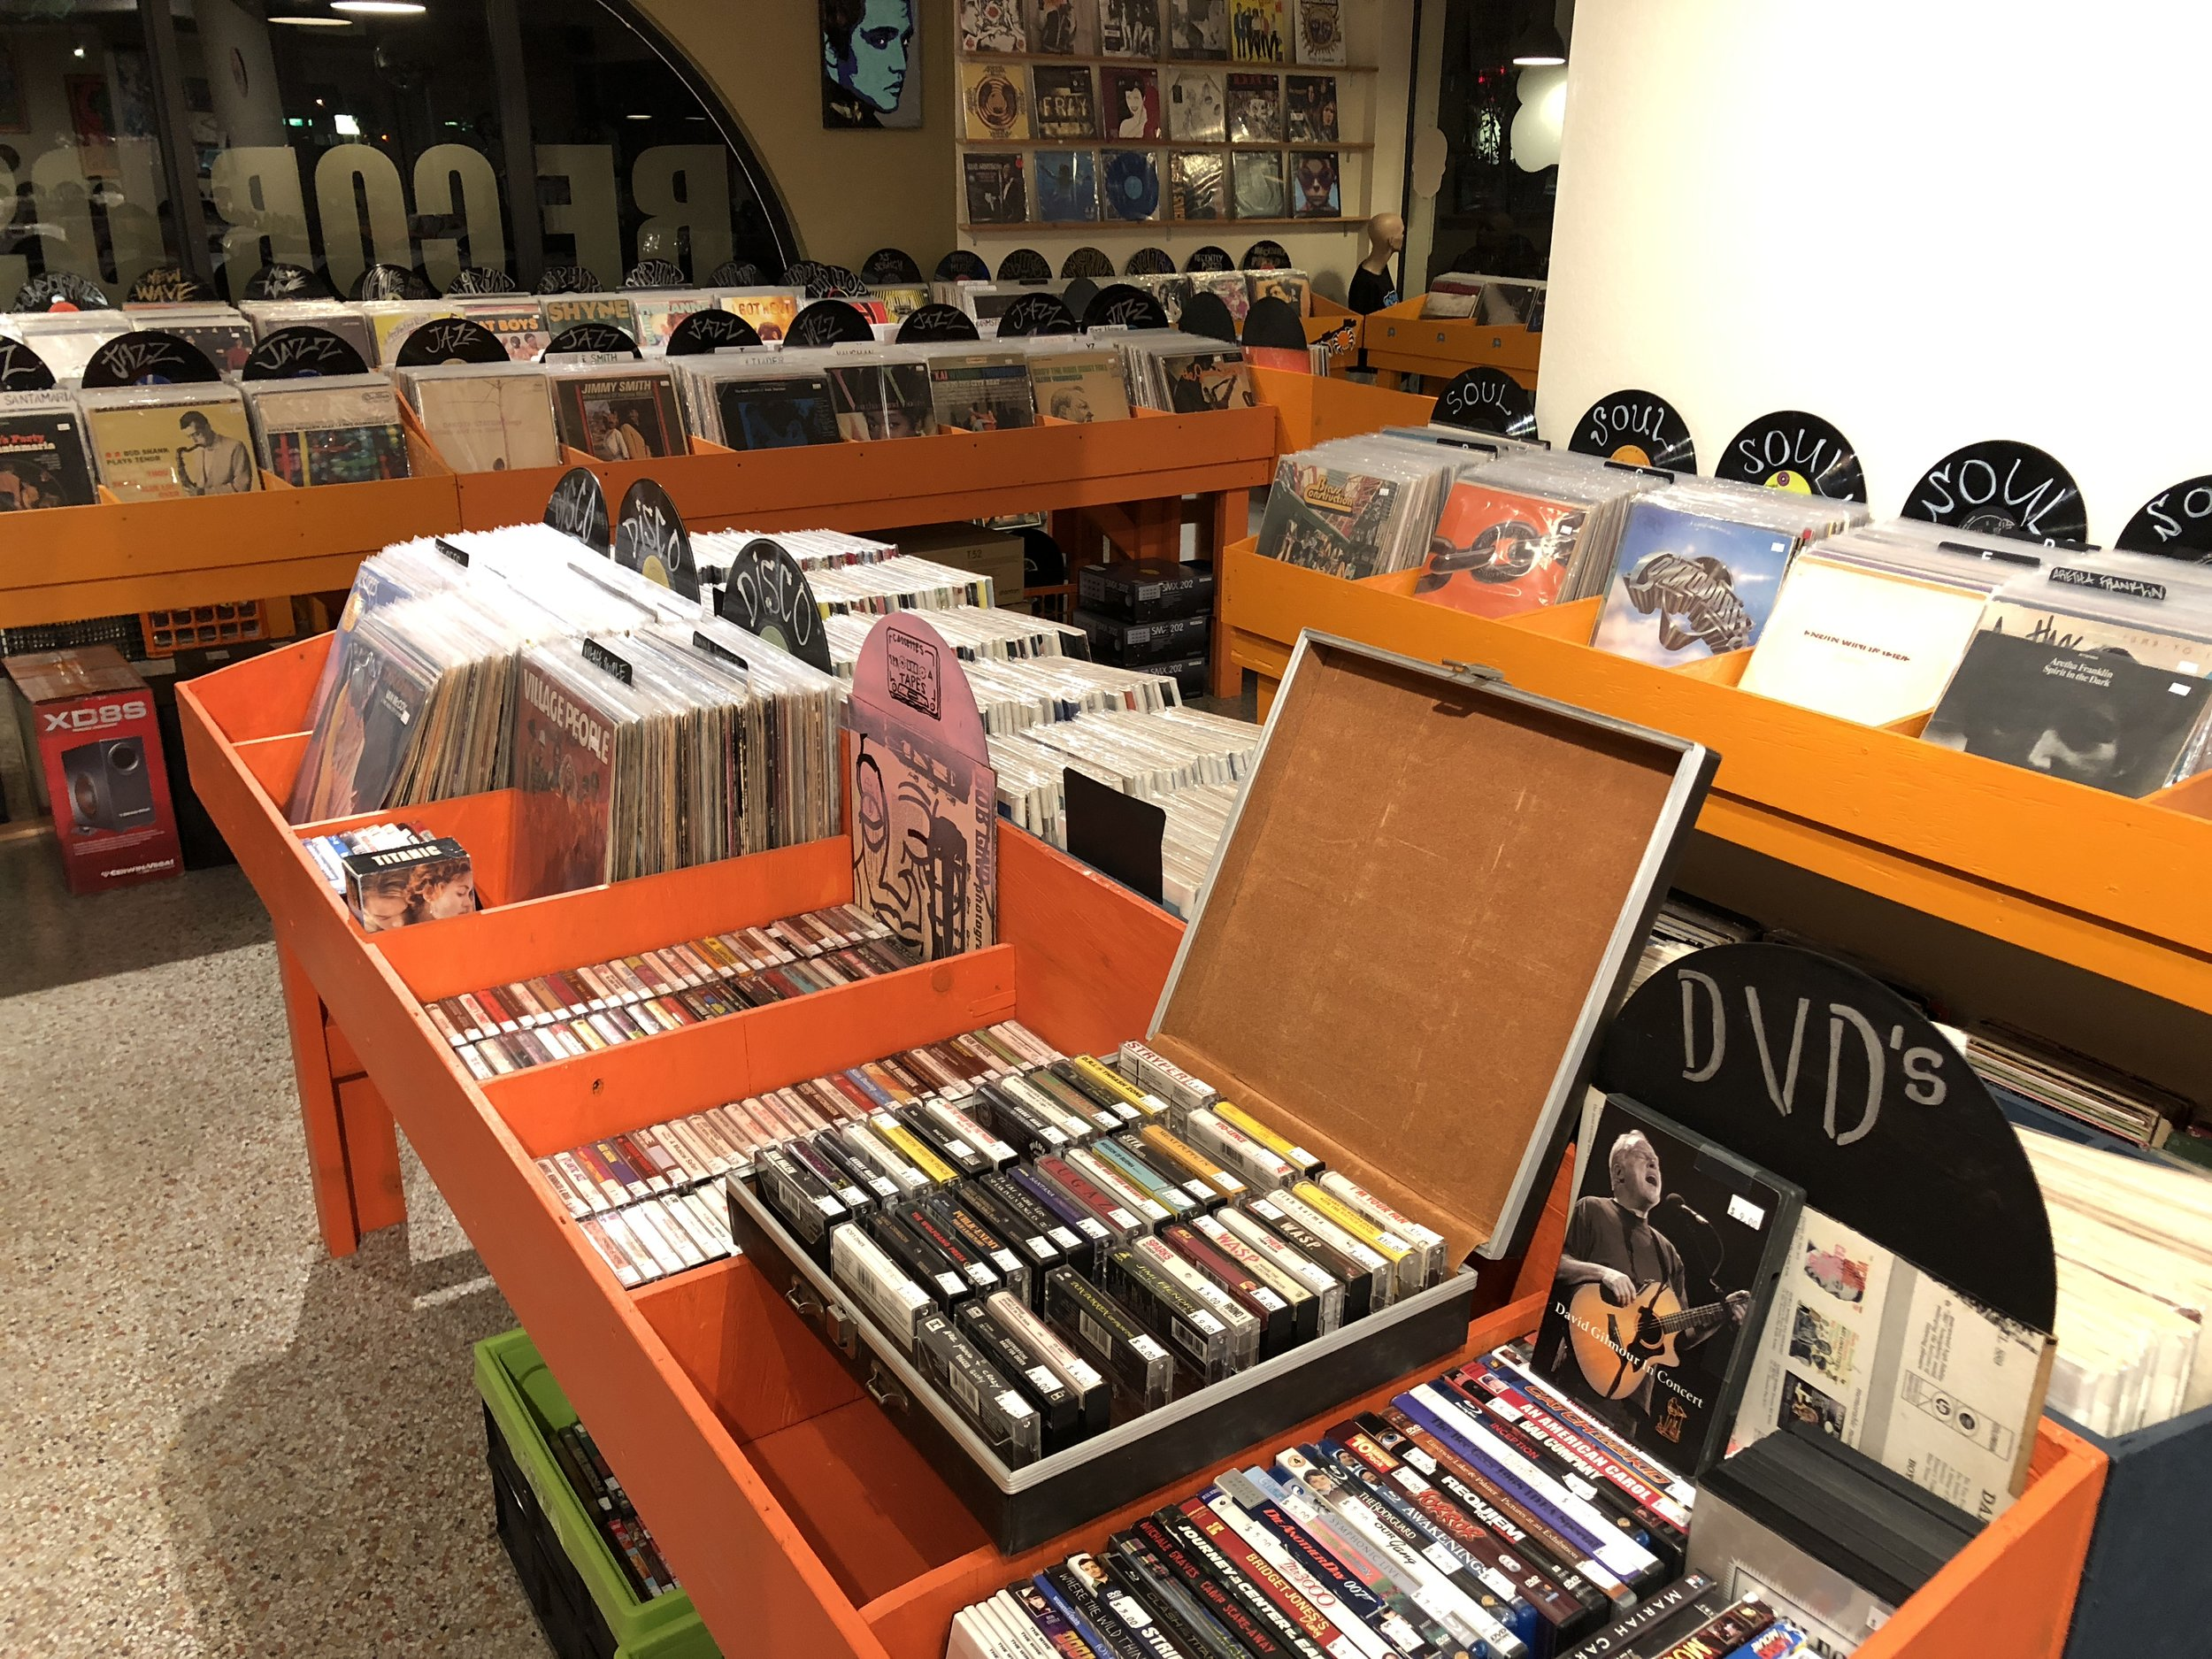 CASSETTE TAPES AND DVDS